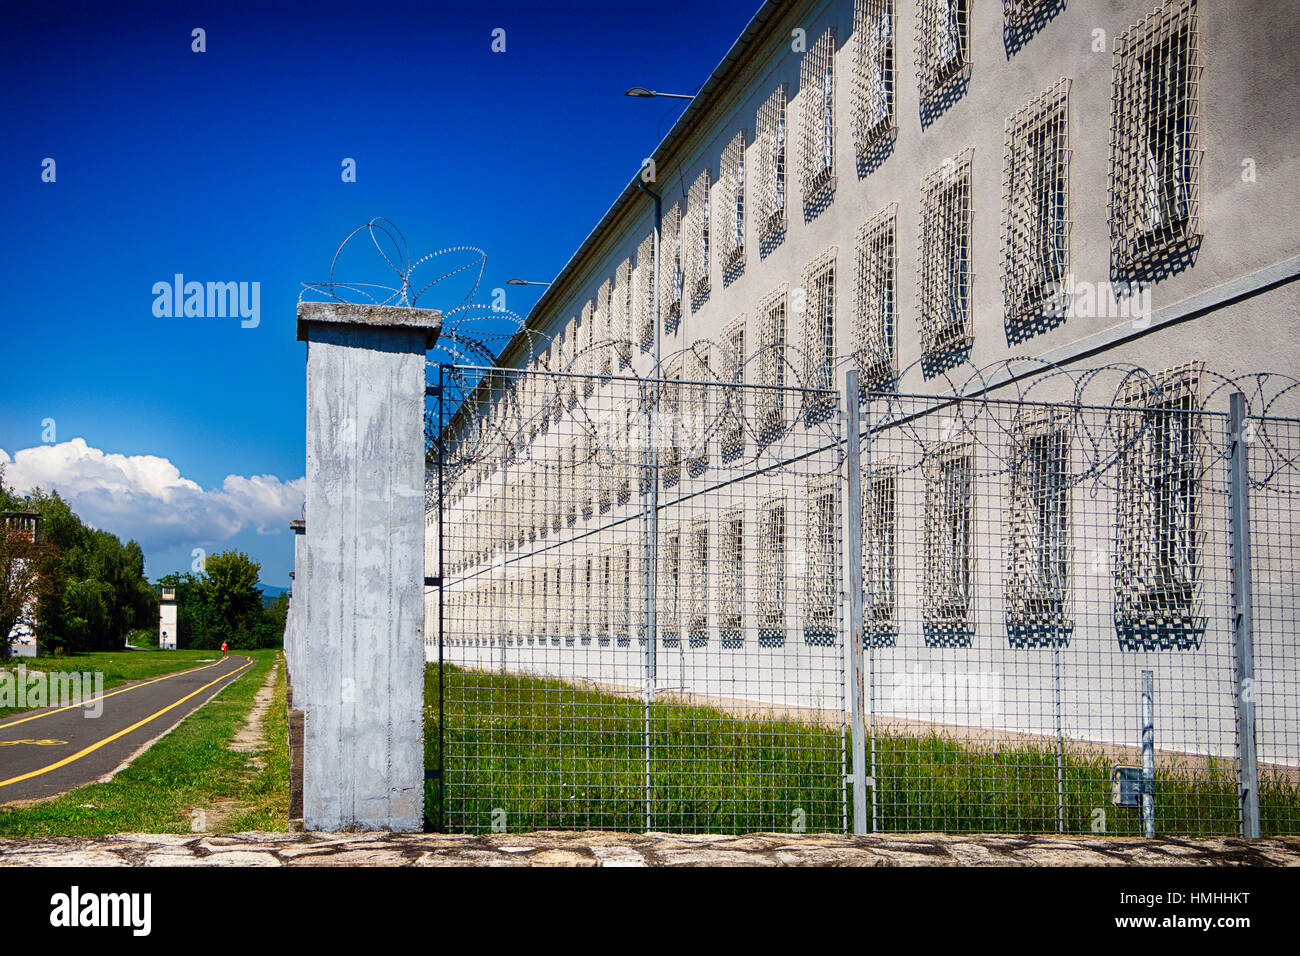 Barbed Wire Fence, State Penitentiary, Vac, Pest County, Hungary Stock Photo